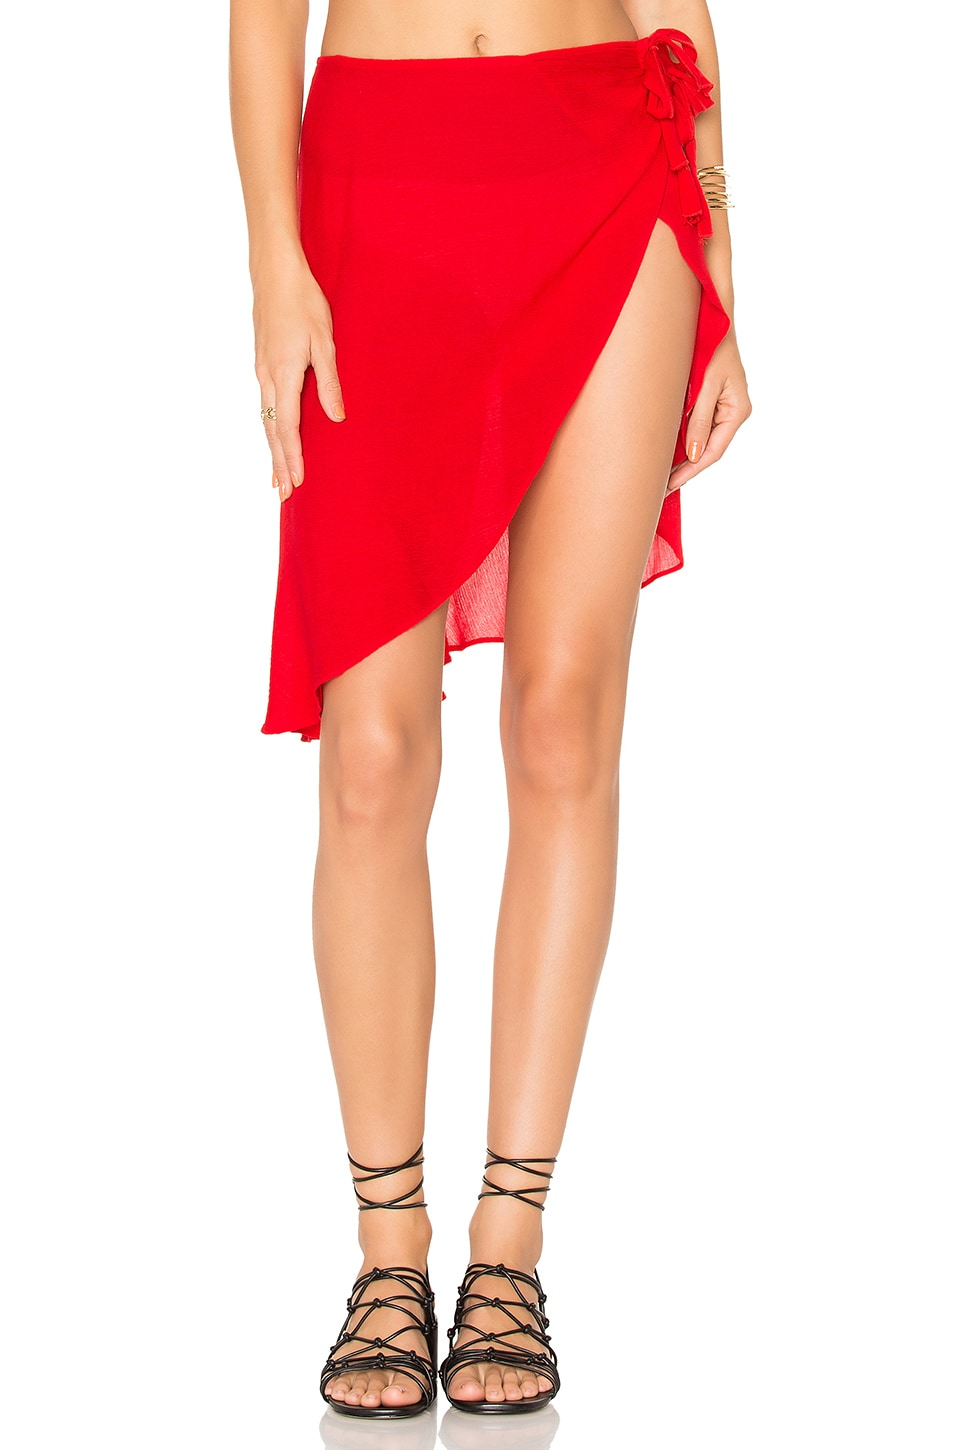 For Love & Lemons Toledo Tie Sarong in Chili Pepper